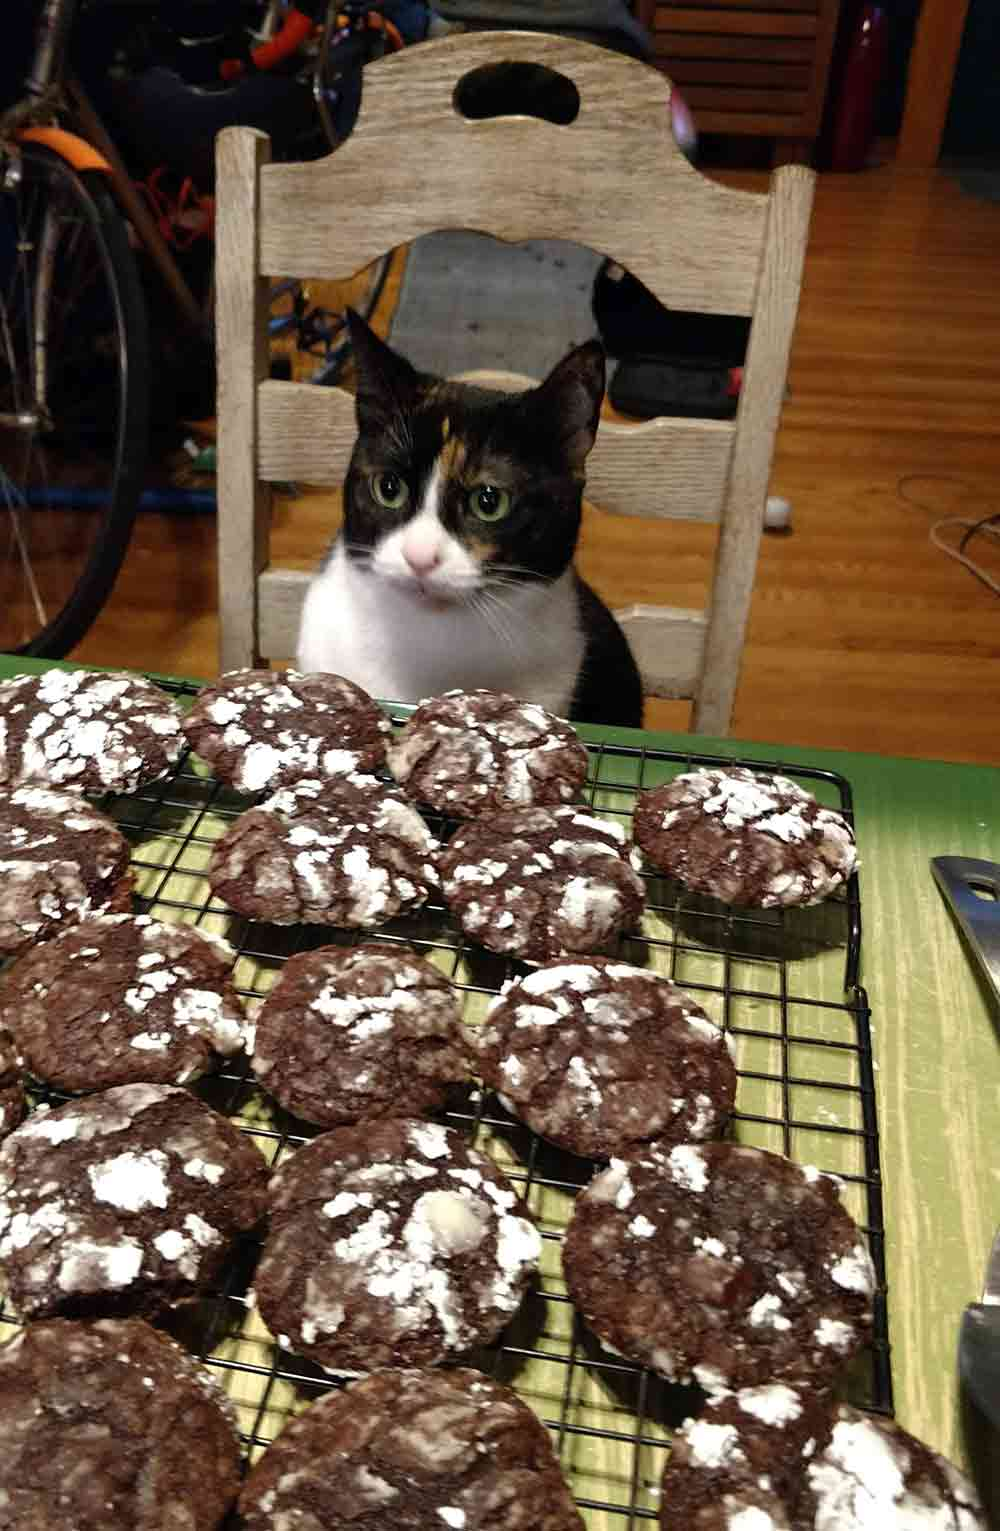 A table of freshly baked chocolate-ginger crinkle cookies covered in powder sugar